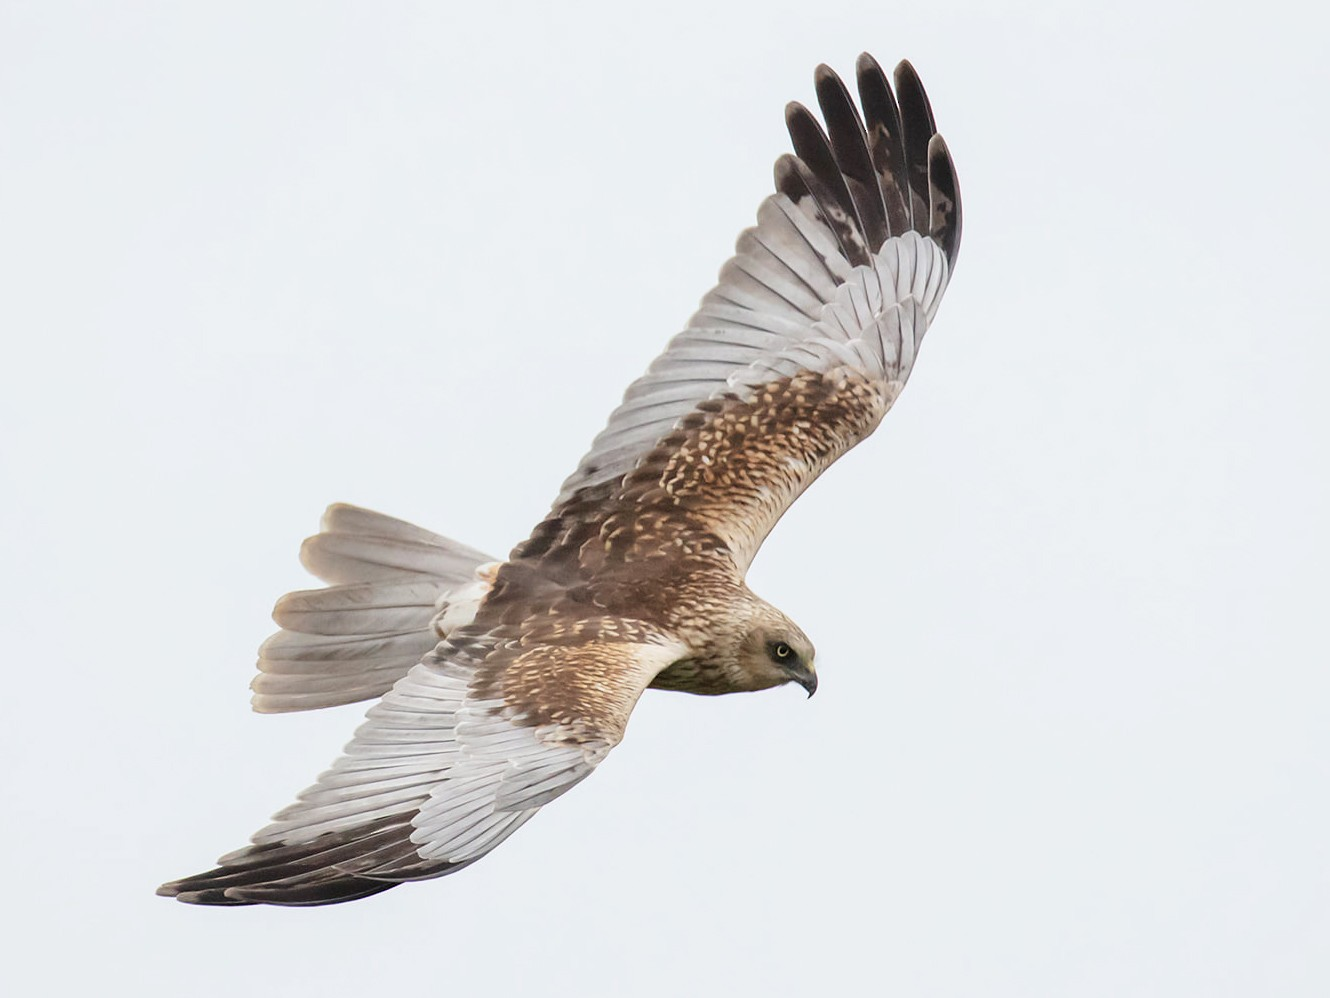 Eurasian Marsh-Harrier - CHUAN-CHENG WANG